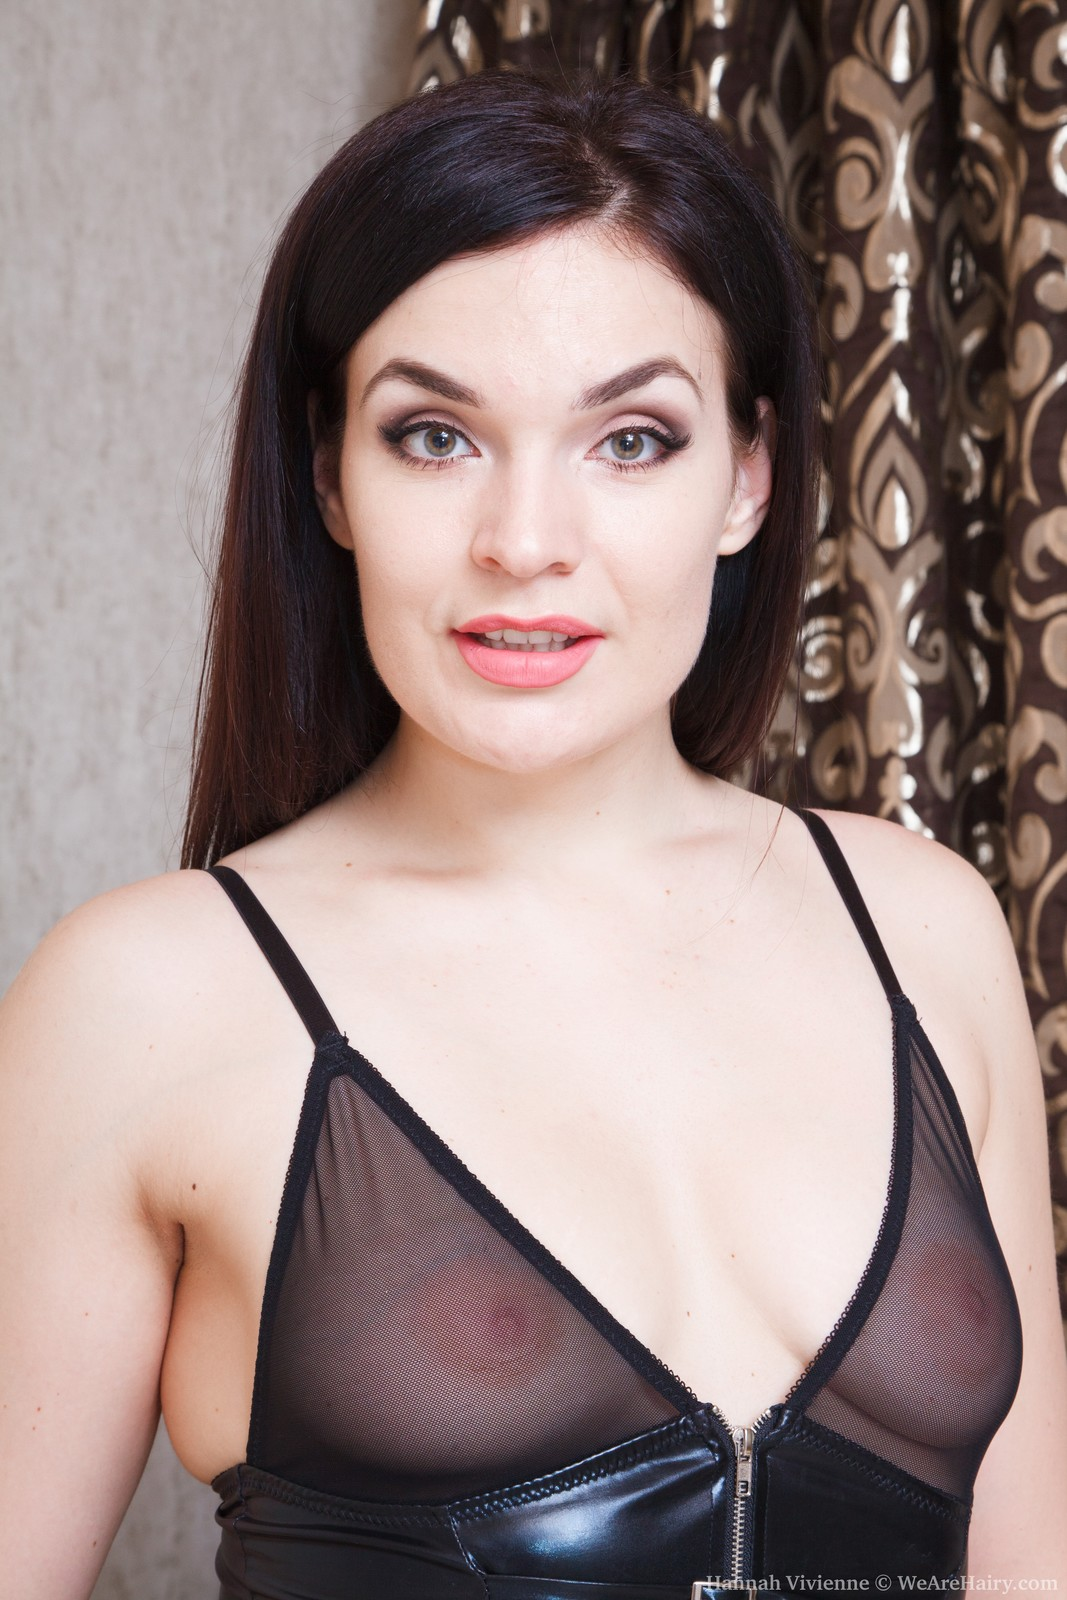 Hot raven haired sexpot Hannah Vivienne takes off her sexy black lingerie to get to her furry hole